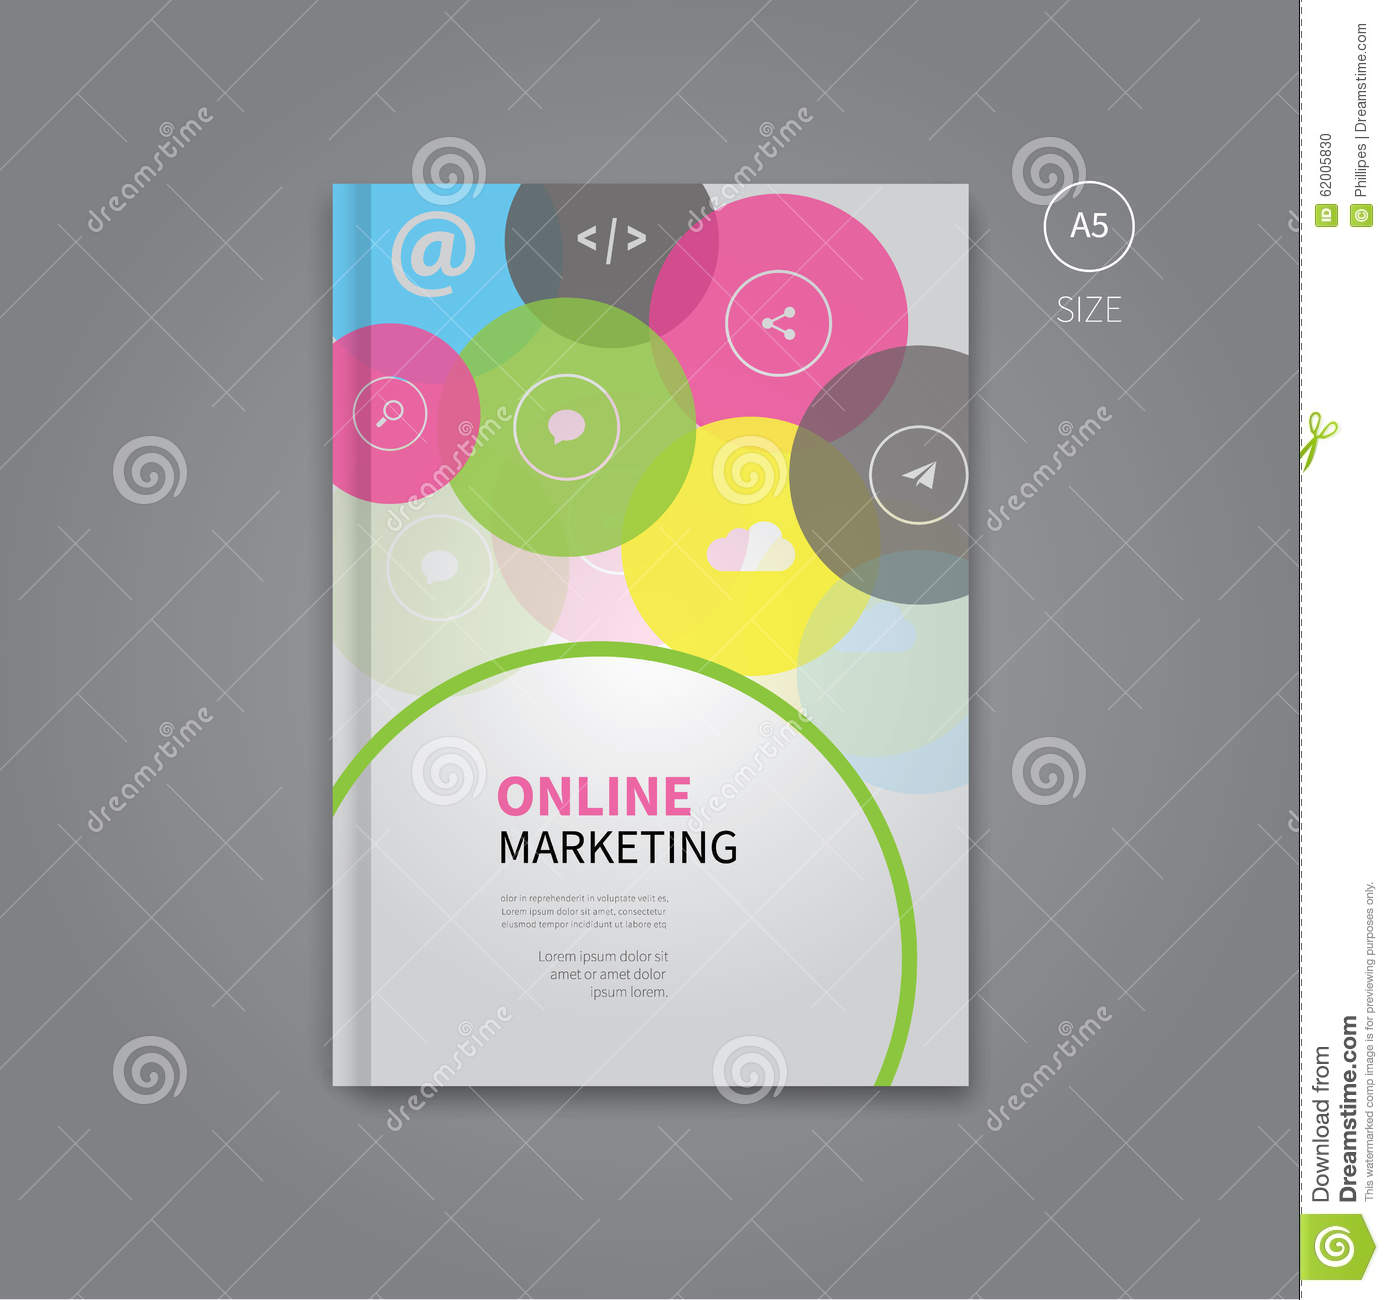 Design book covers online - Book Corporate Cover Design